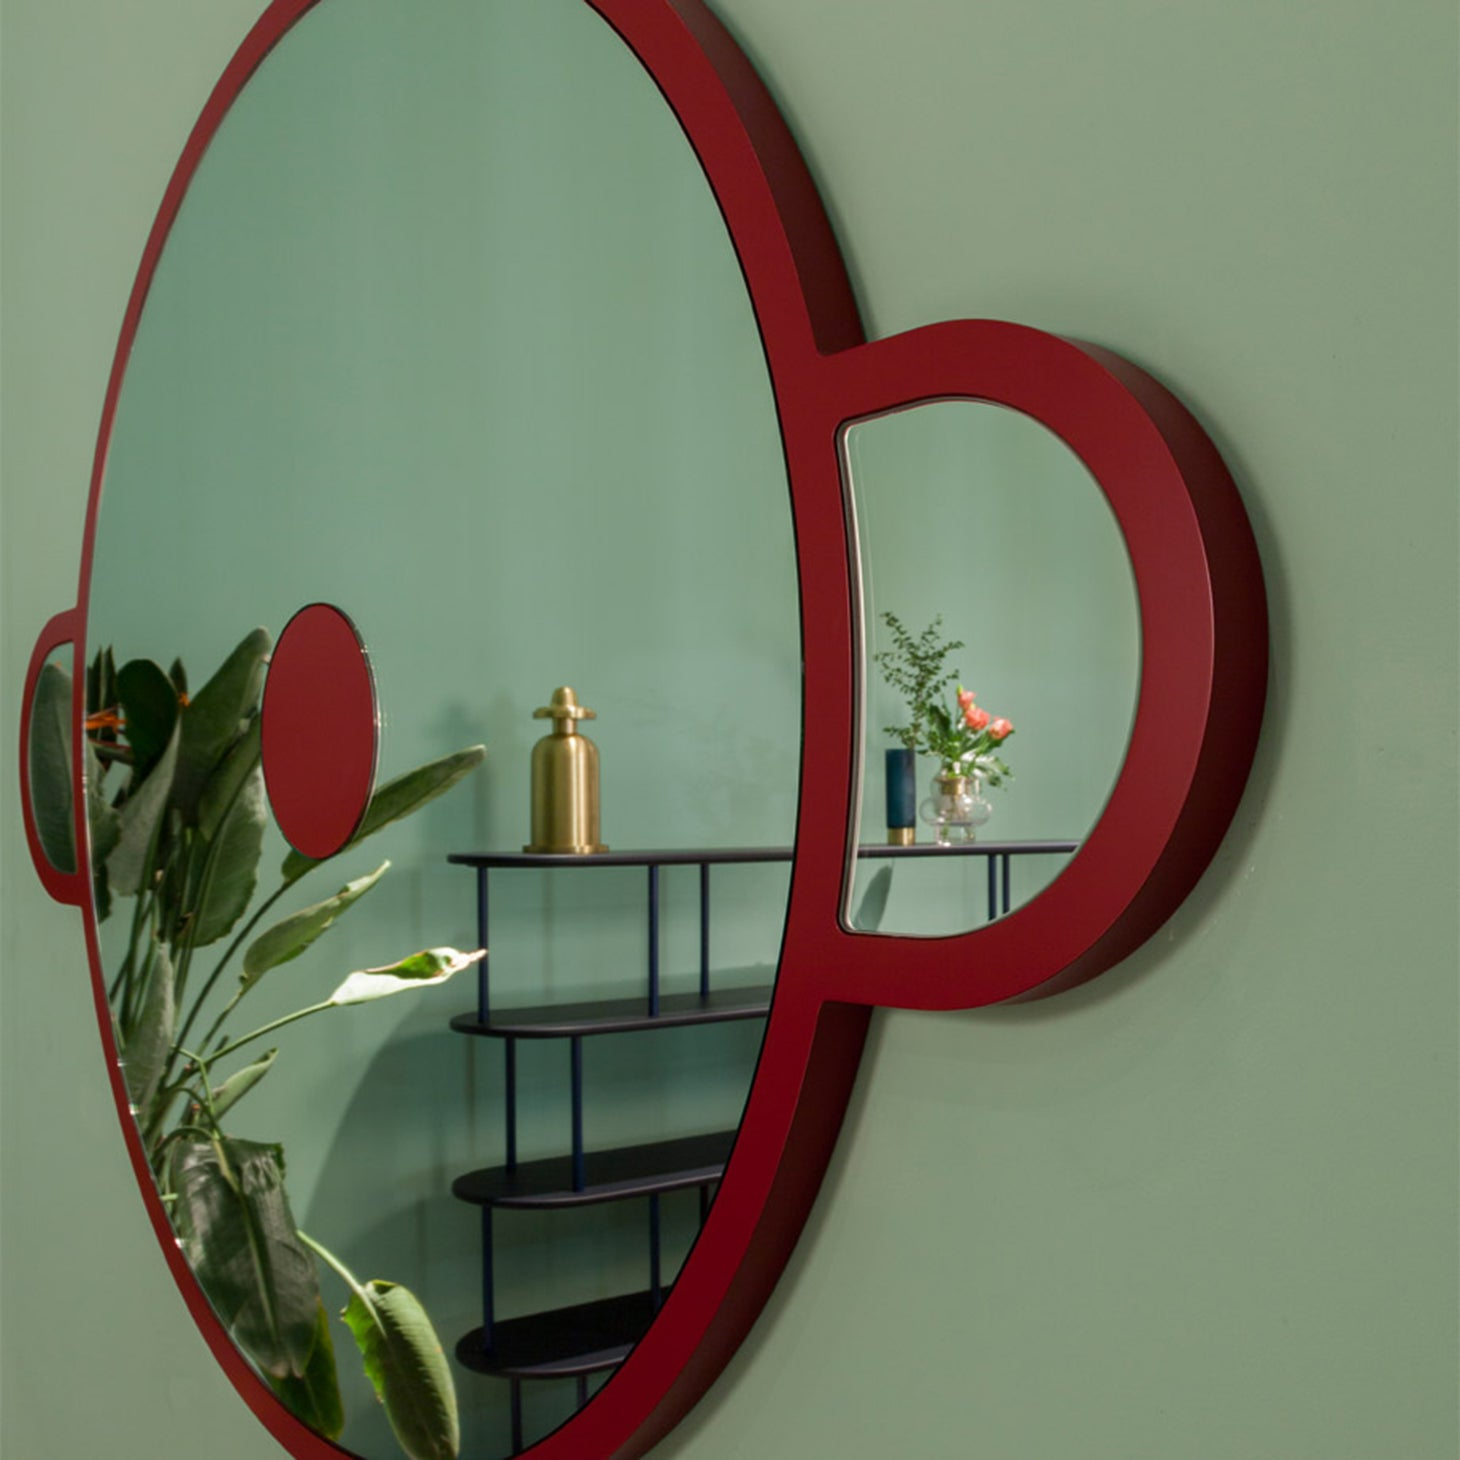 Monkey Mirror Accessories Jaime Hayon Designer Furniture Sku: 758-100-10003